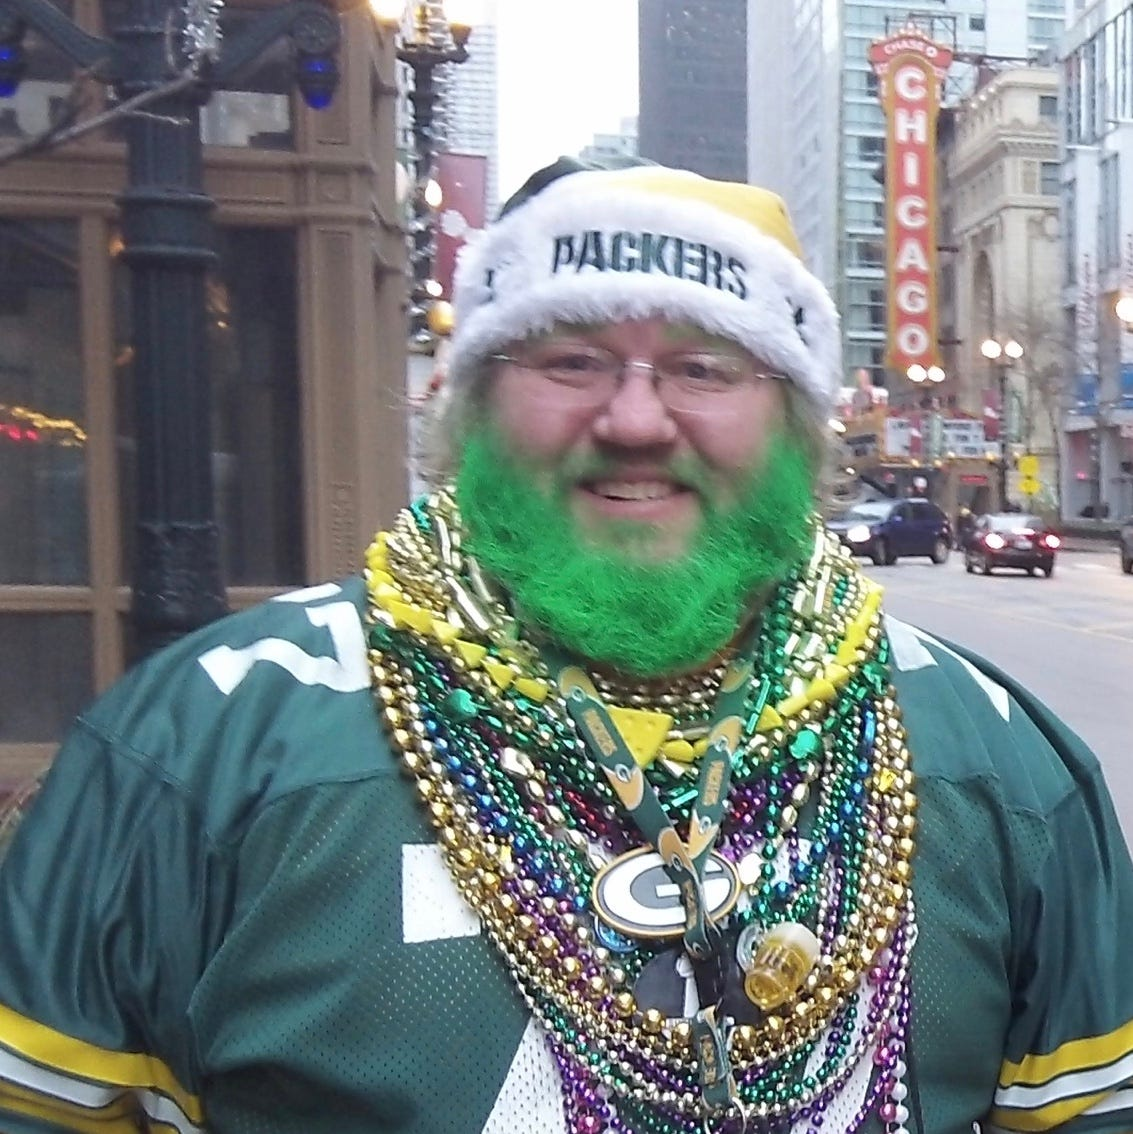 Packers fan awaits judge's ruling on Sunday game gear